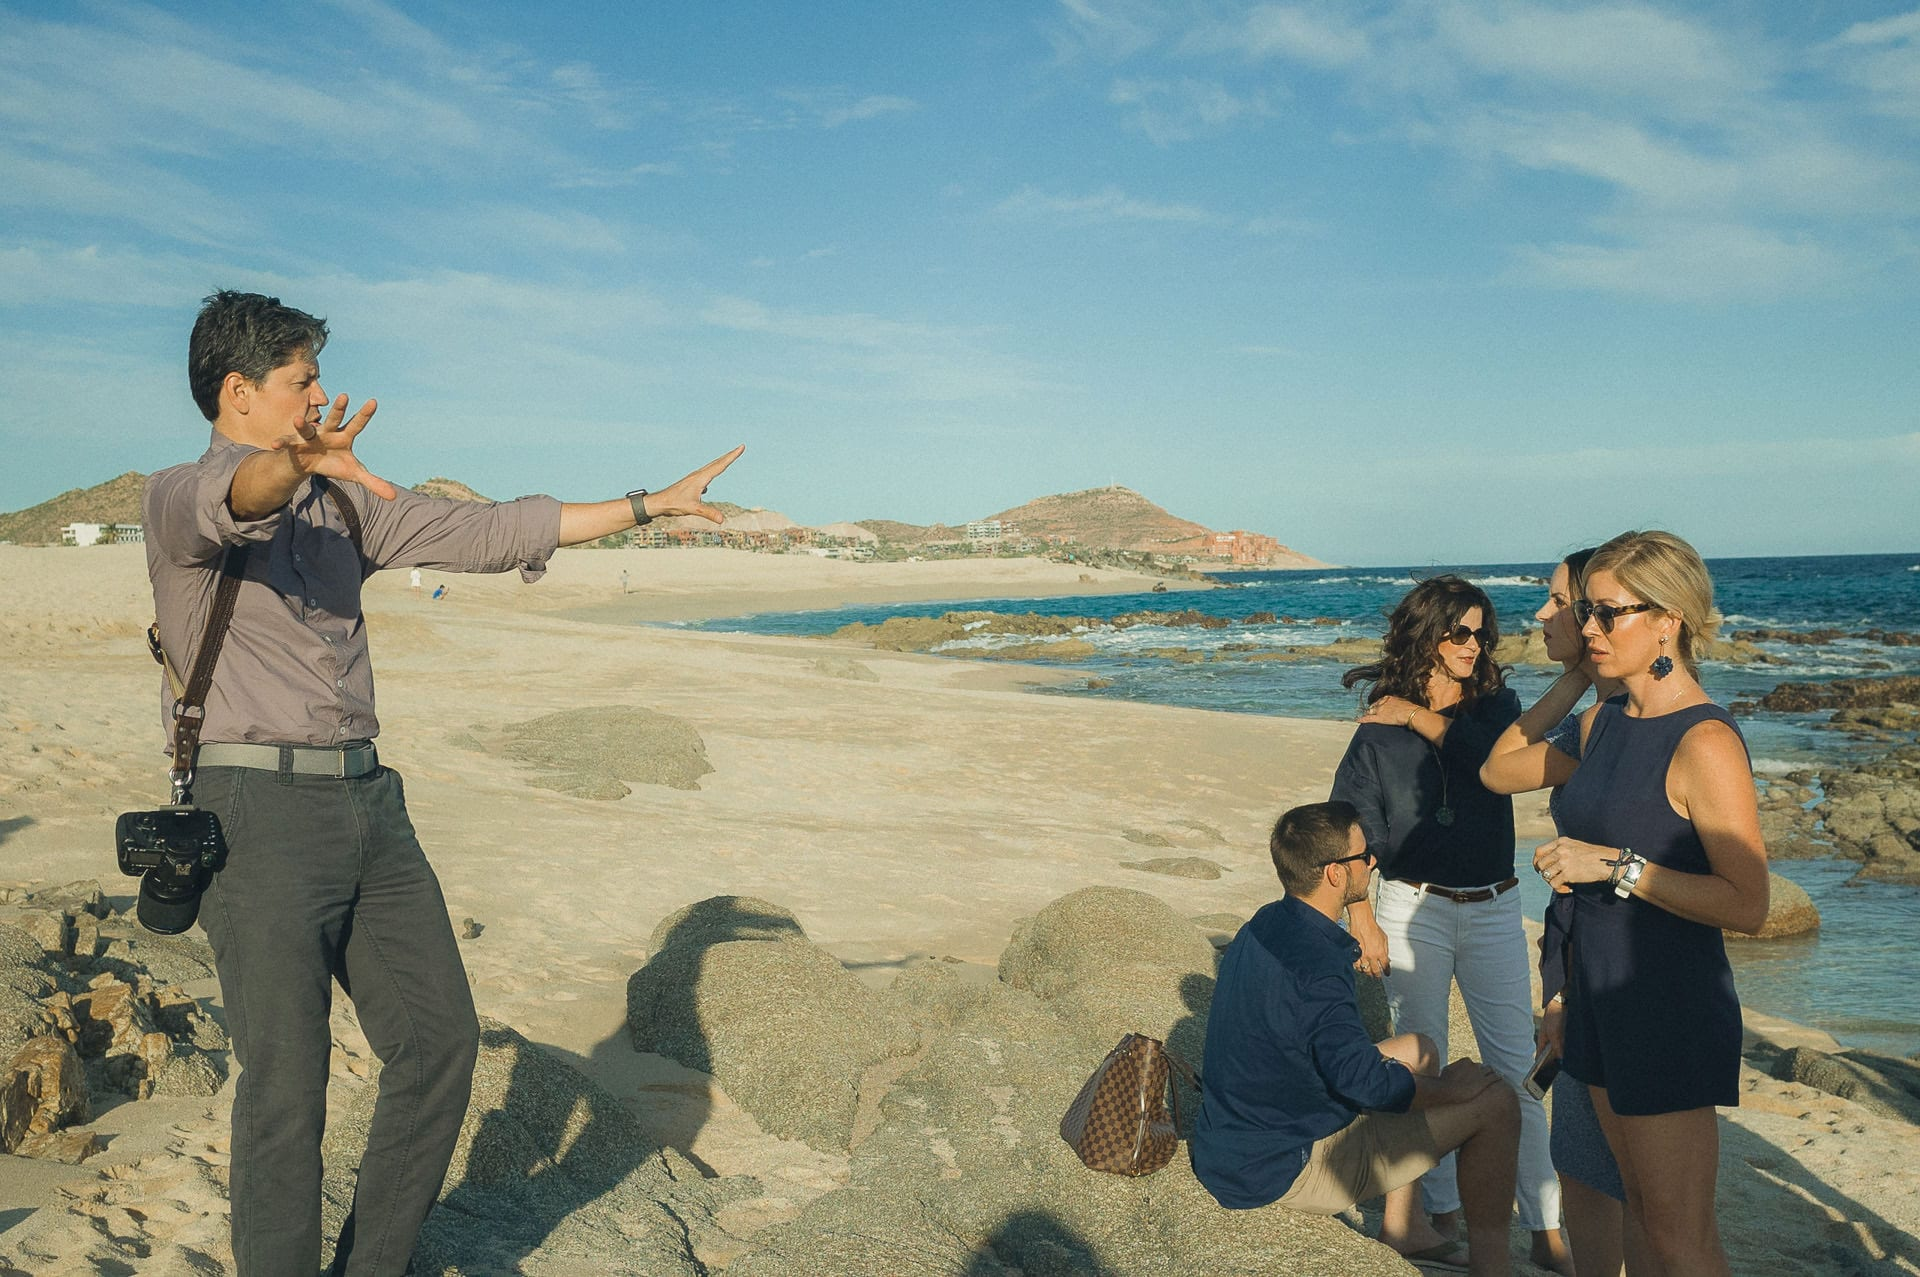 LOS CABOS WEDDING PHOTOGRAPHY 5 REASONS TO HIRE LOCAL